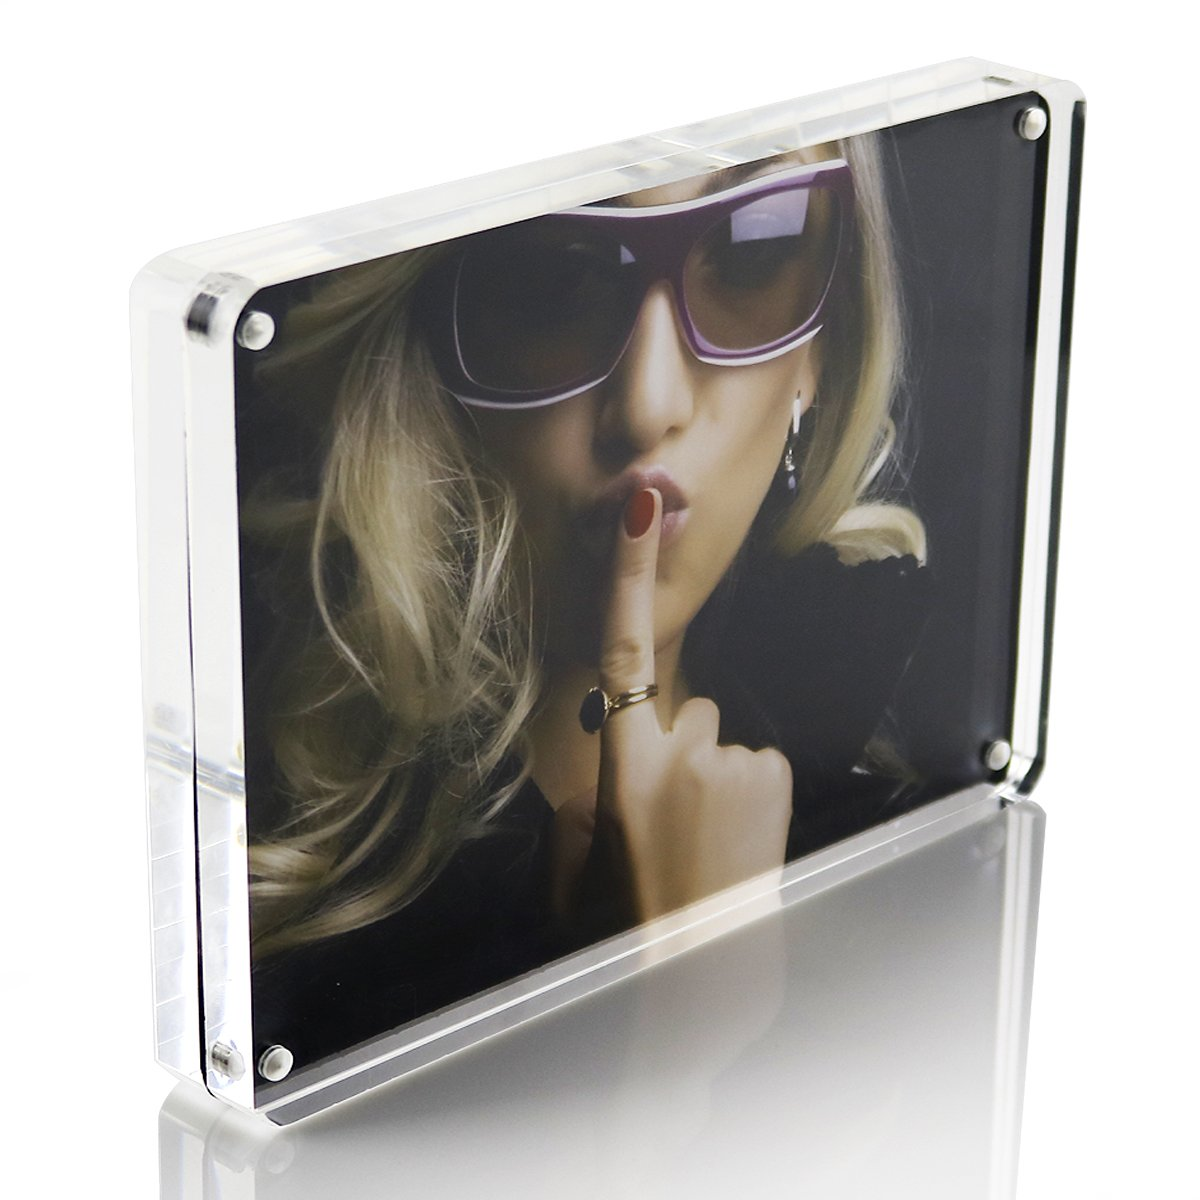 62d804de1c61 Get Quotations · 5x7 Double Sided Magnetic Clear Acrylic Glass Picture  Frames - Round Corner 12+12mm Thickness